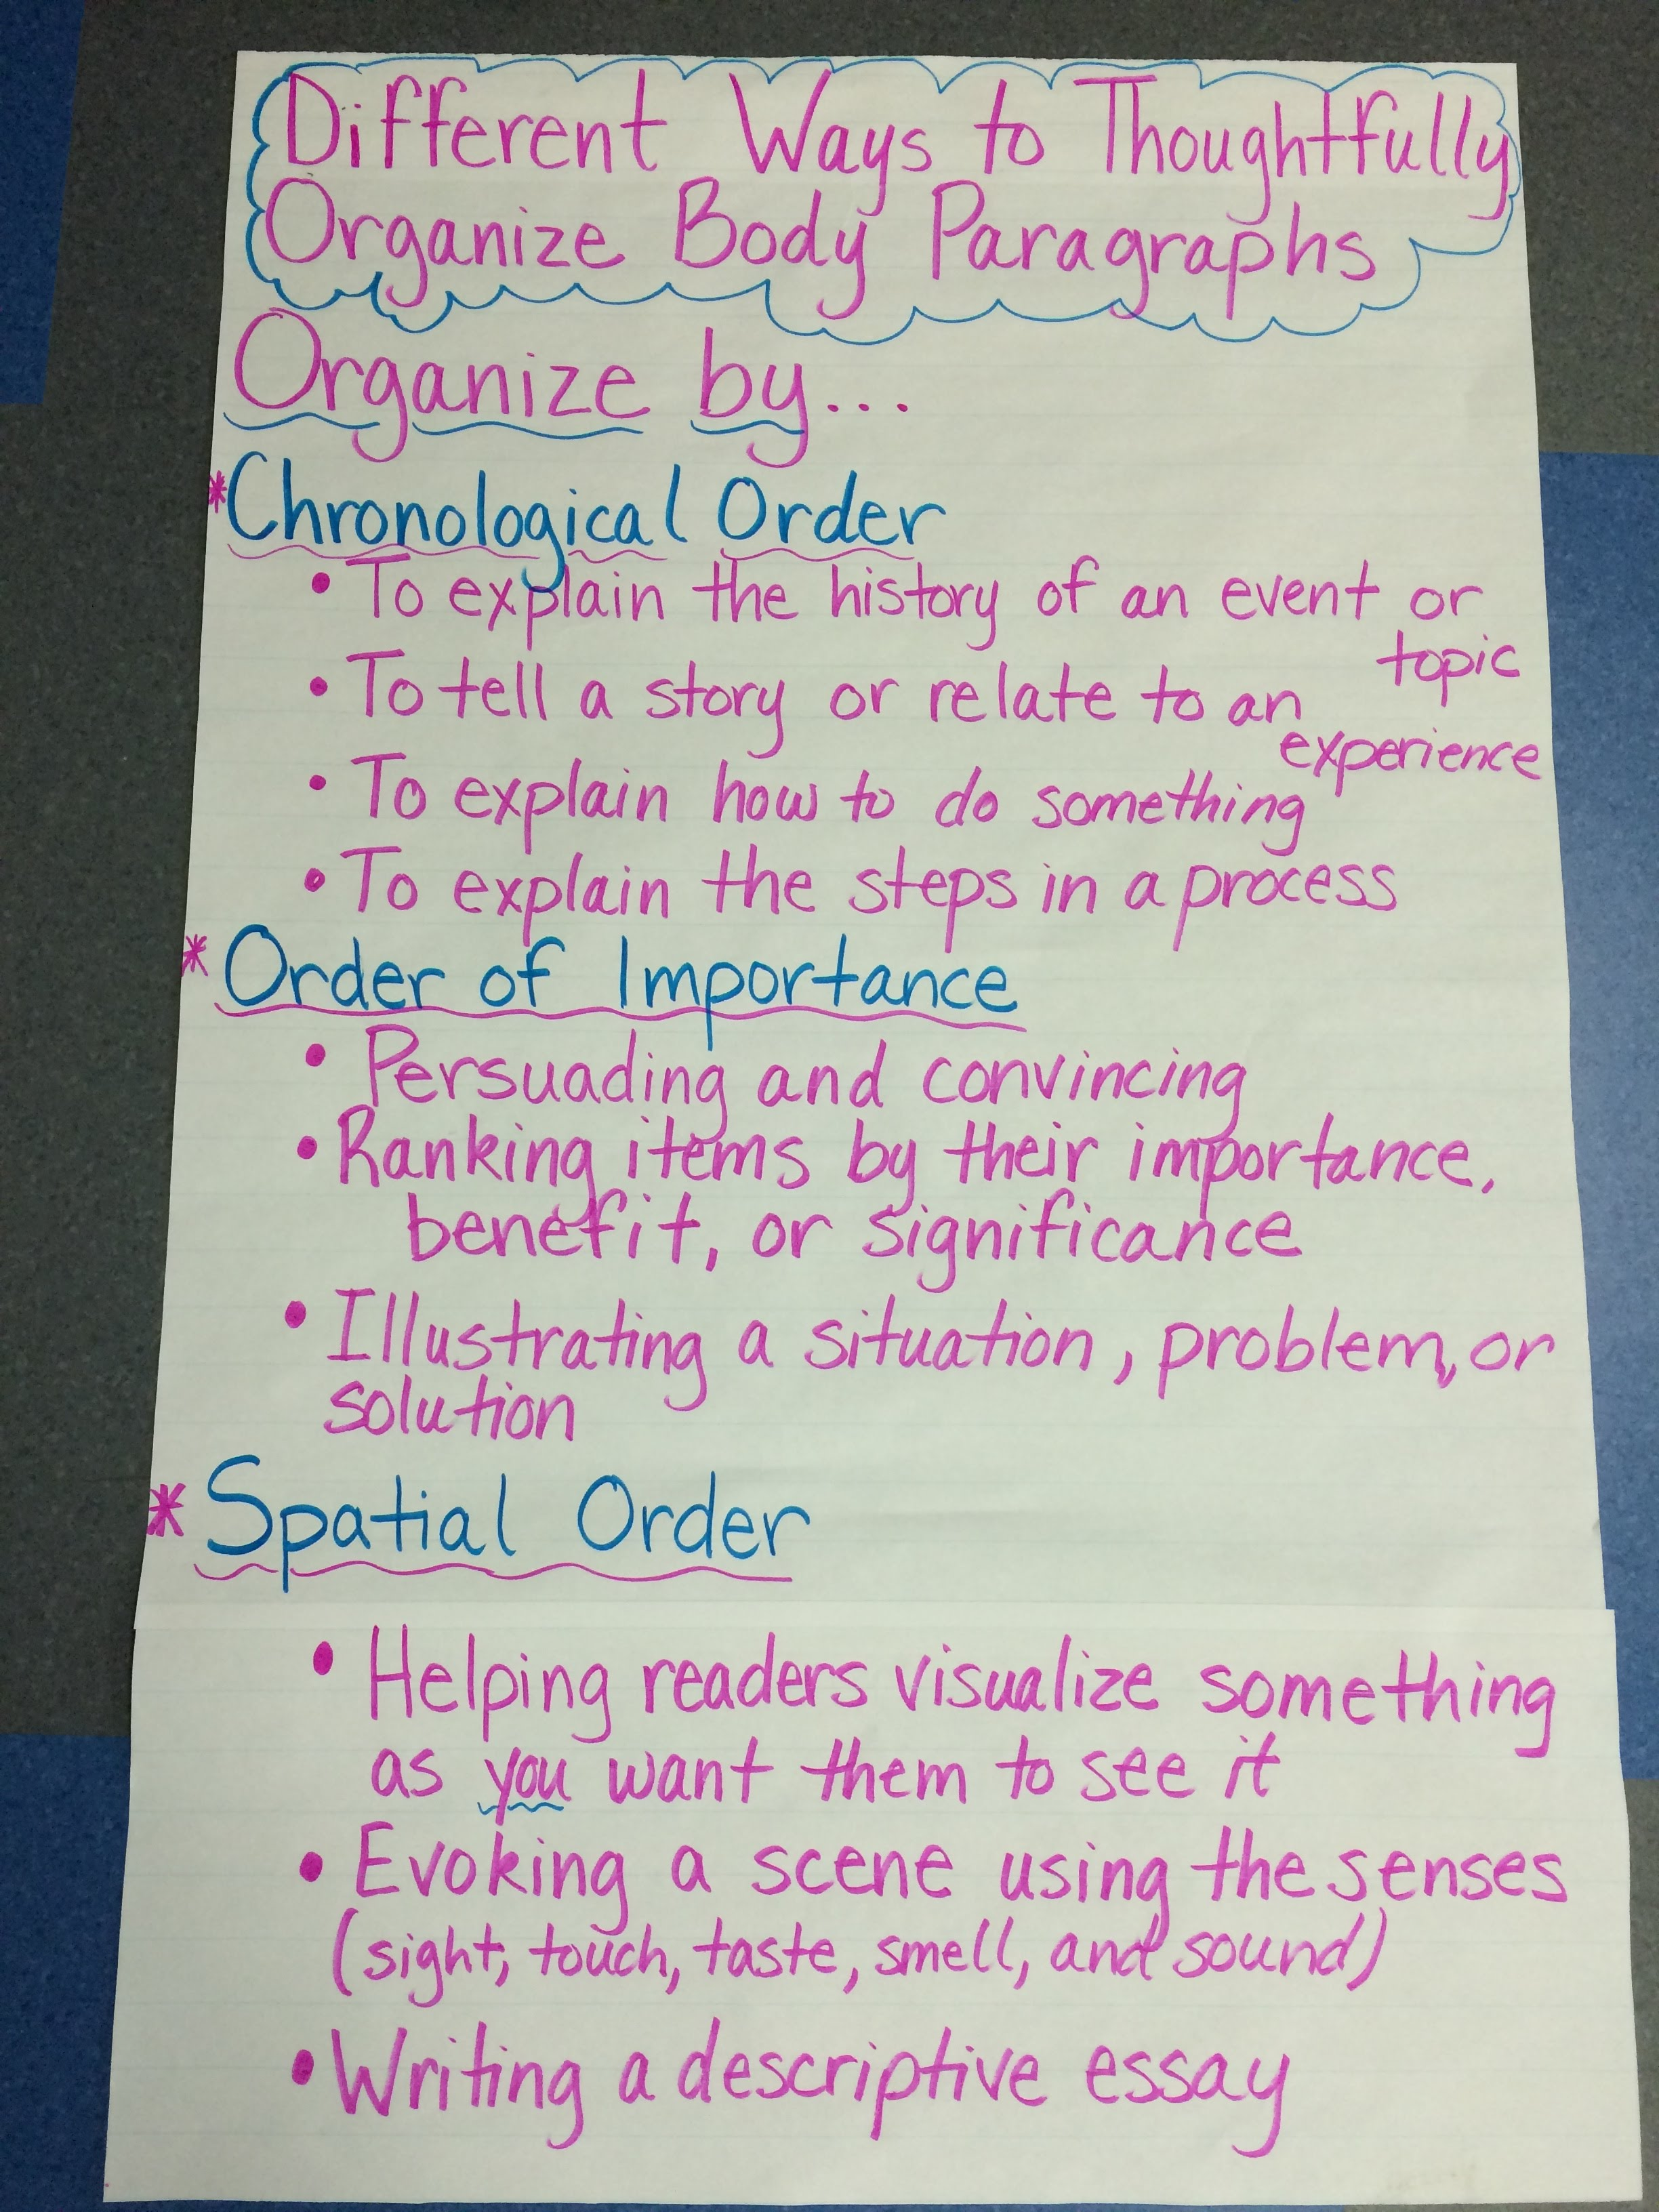 3 16 3 20 8r literacy mrs brandt today we will be thinking about how to thoughtfully organize body paragraphs in the literary essay see anchor chart in writer s workshop anchor charts